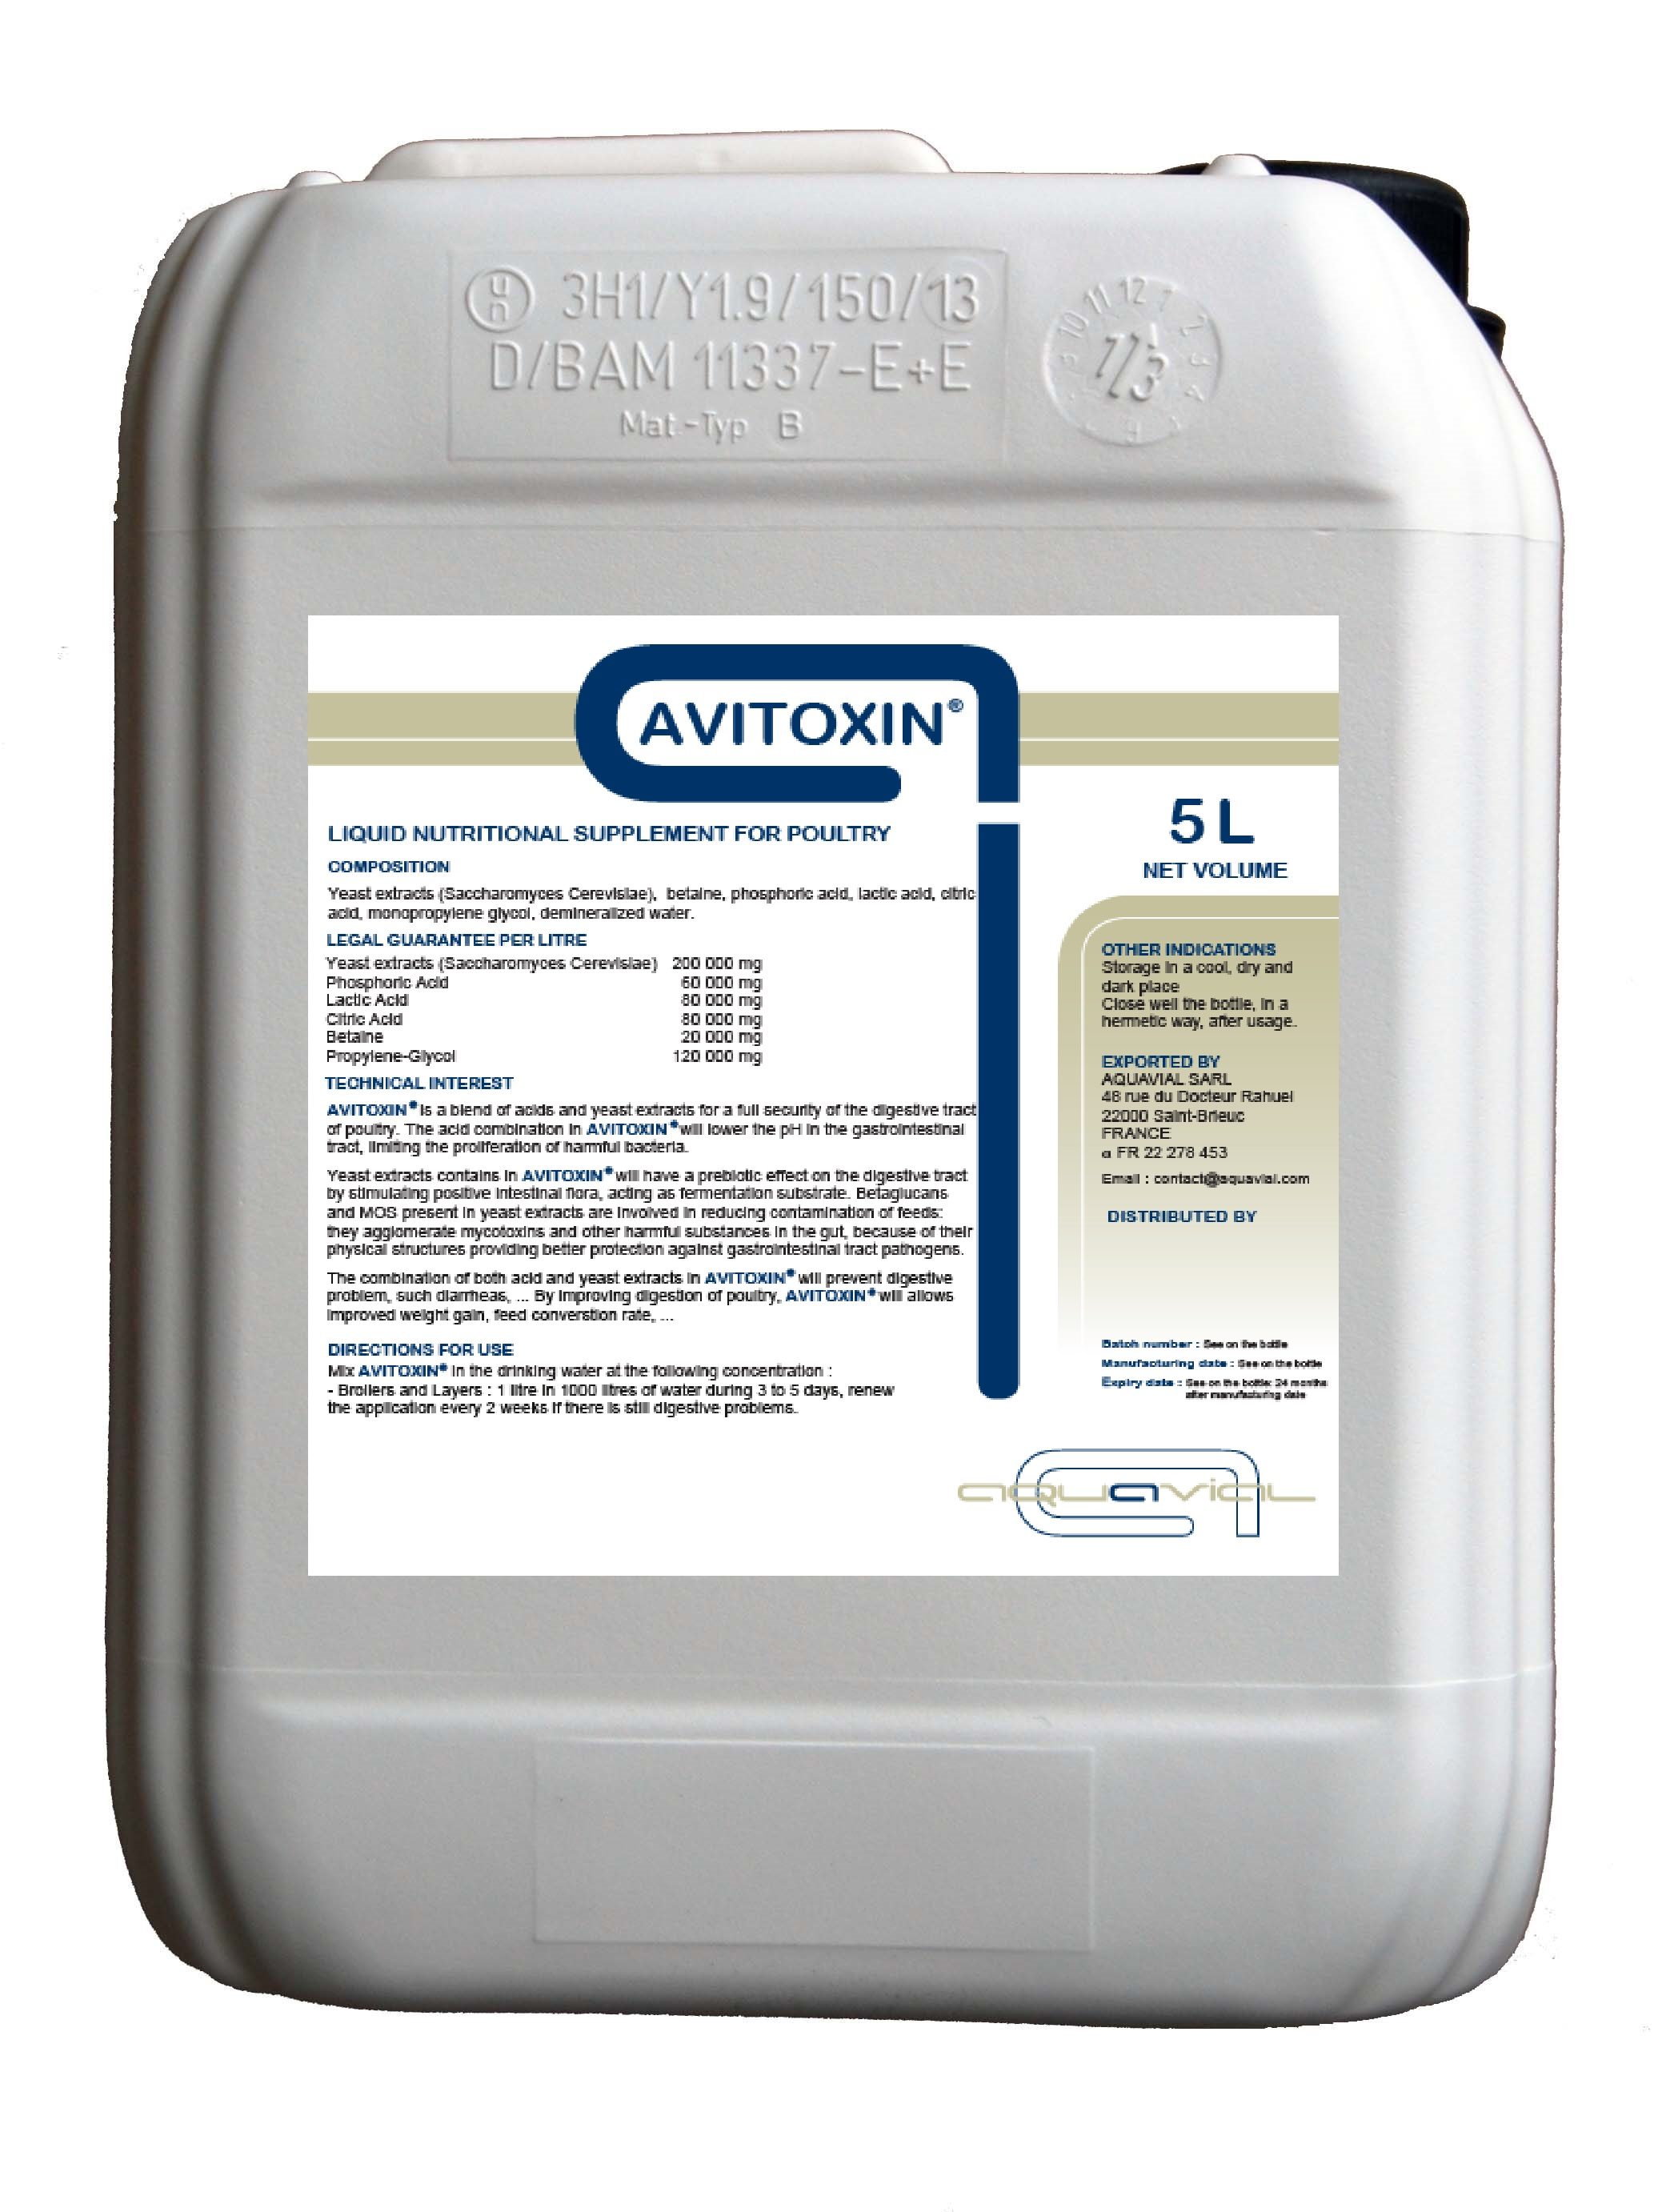 Avitoxin - Aquavial liquid nutritional supplement for poultry